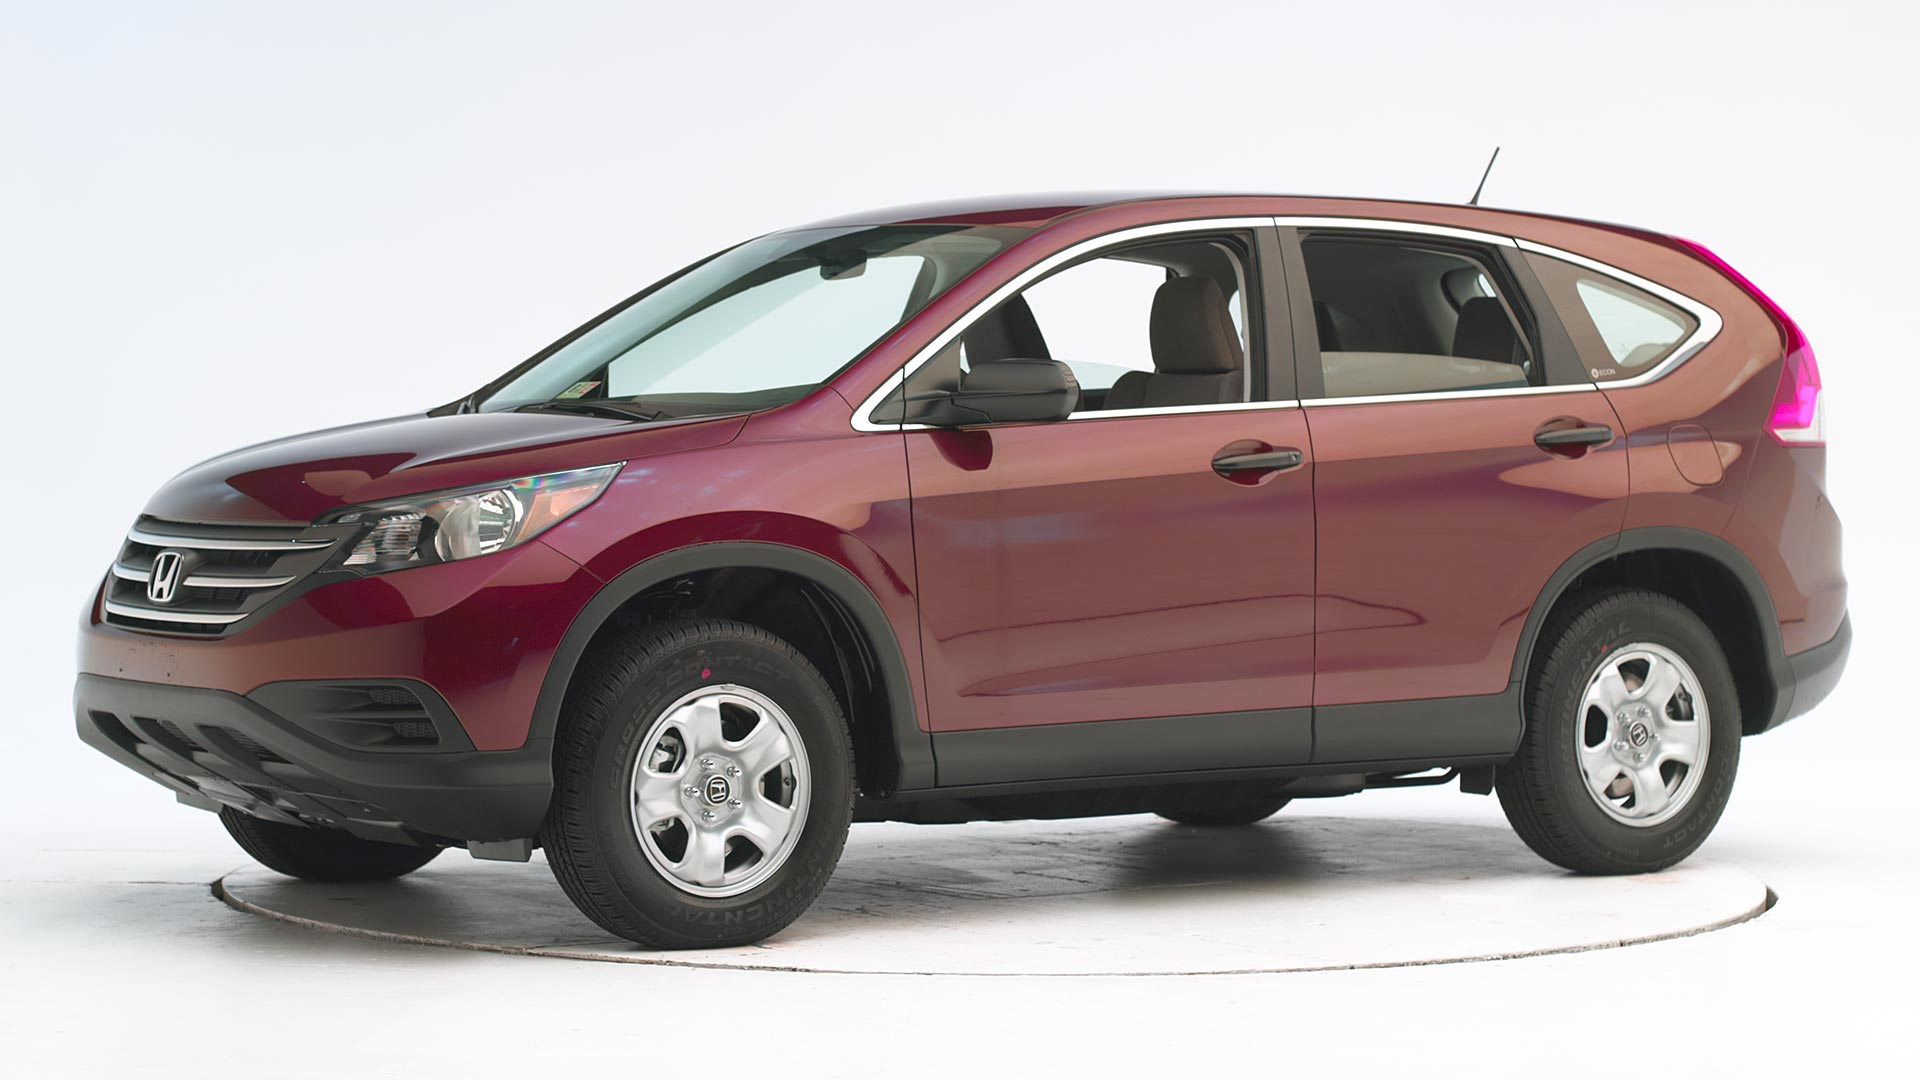 2013 Honda CR-V 4-door SUV